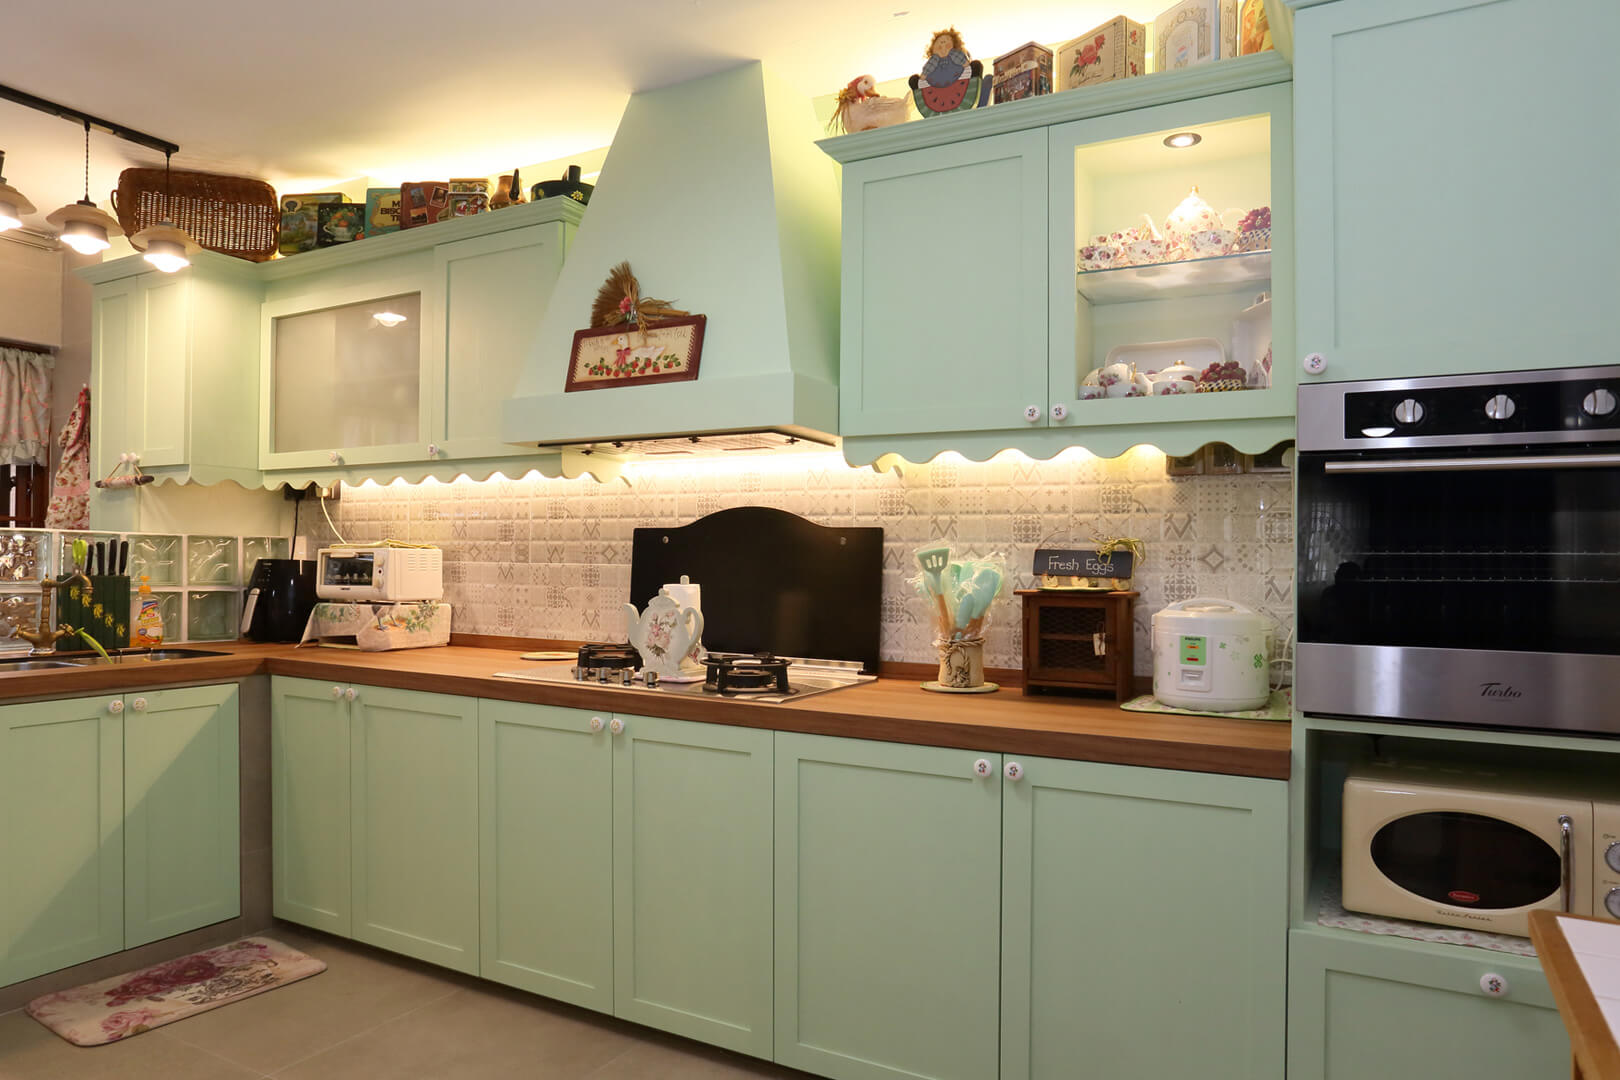 Country Chic Ambiance Interior Design kitchen Open View